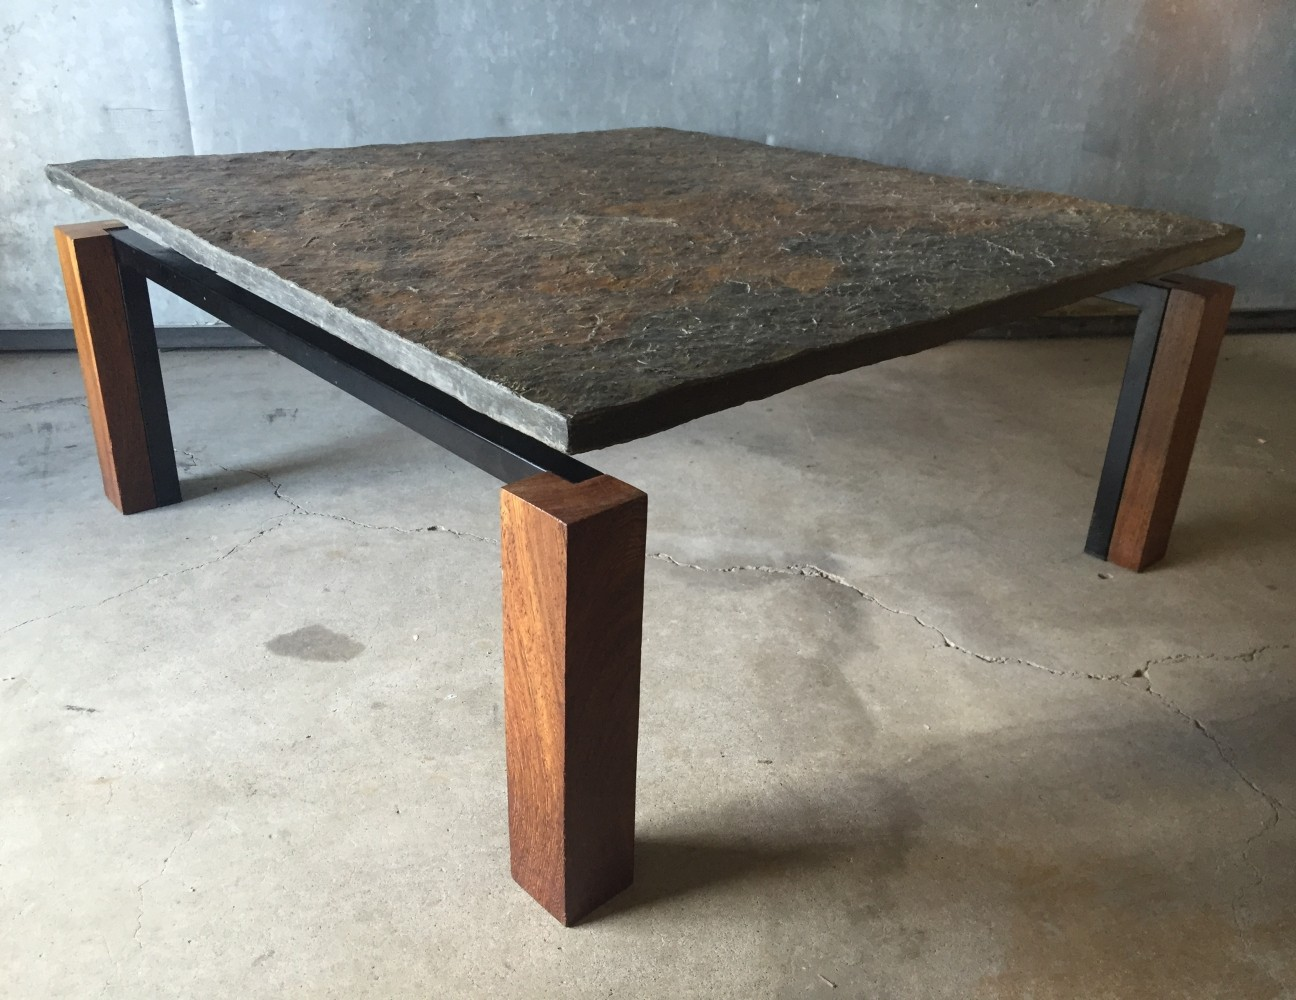 Slate stone  weng  wood   black metal square coffee table  1960s. Slate stone  weng  wood   black metal square coffee table  1960s